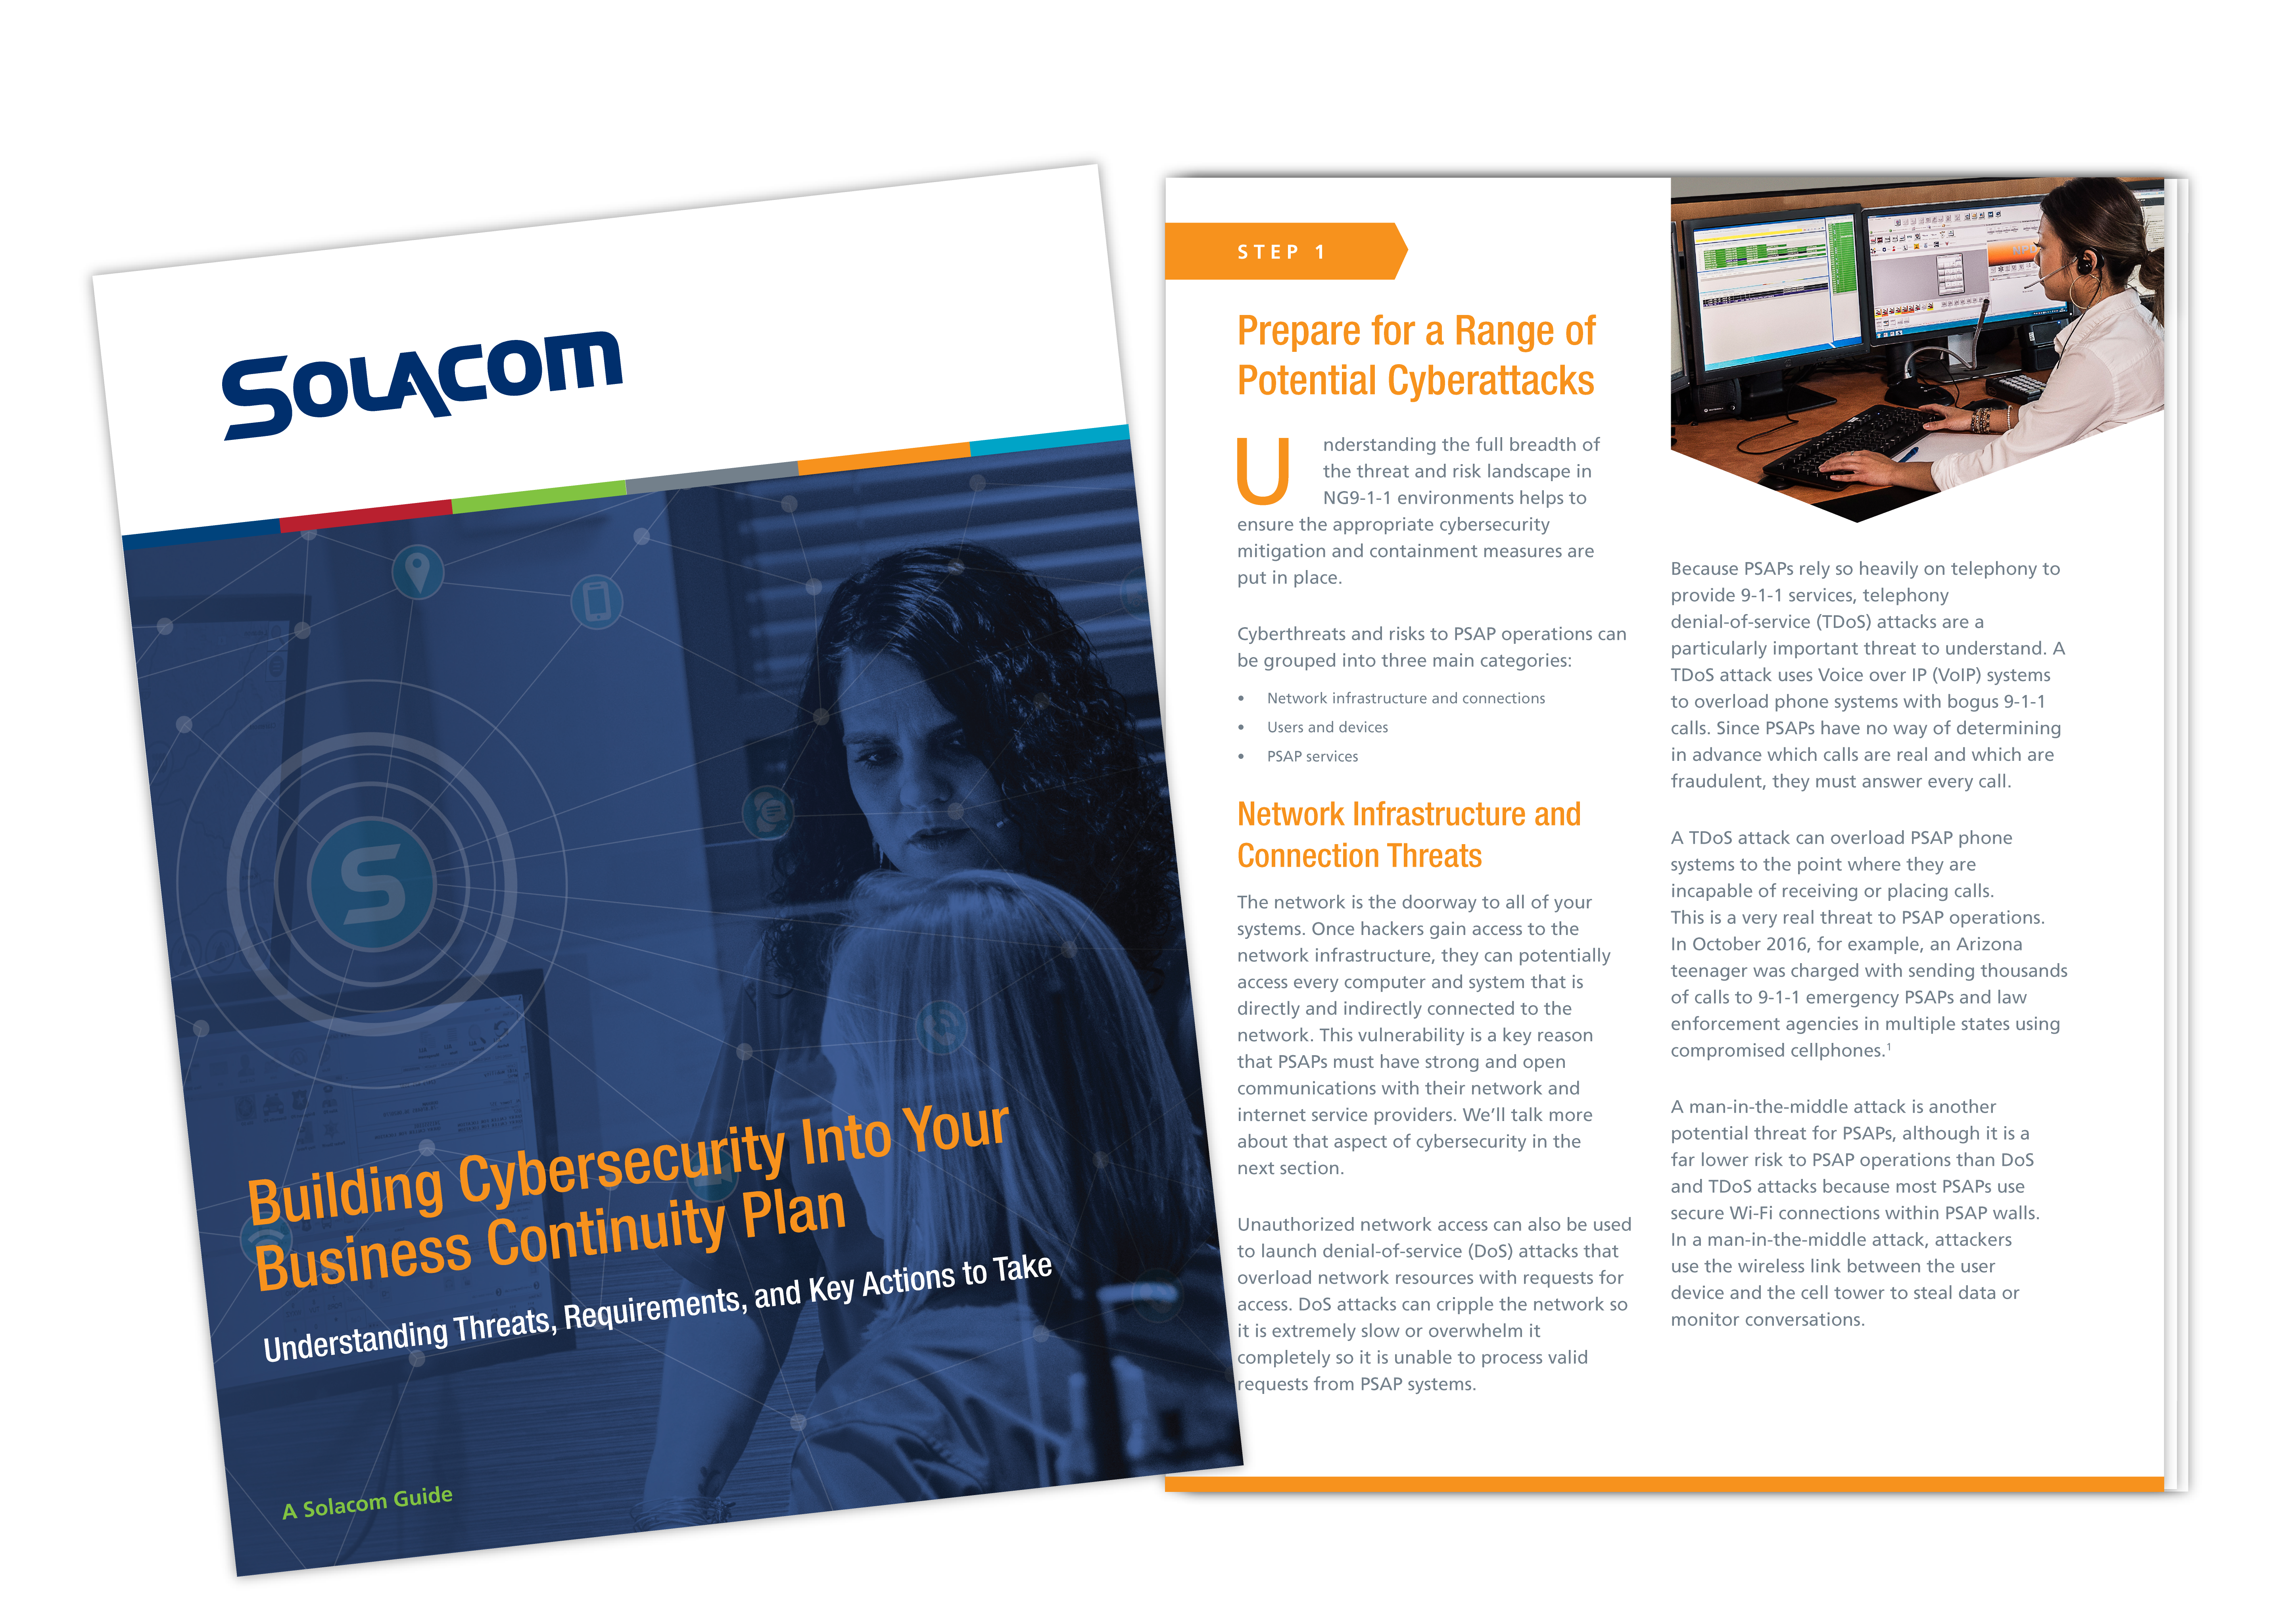 Building Cybersecurity Into Your Business Continuity Plan, a Solacom guide